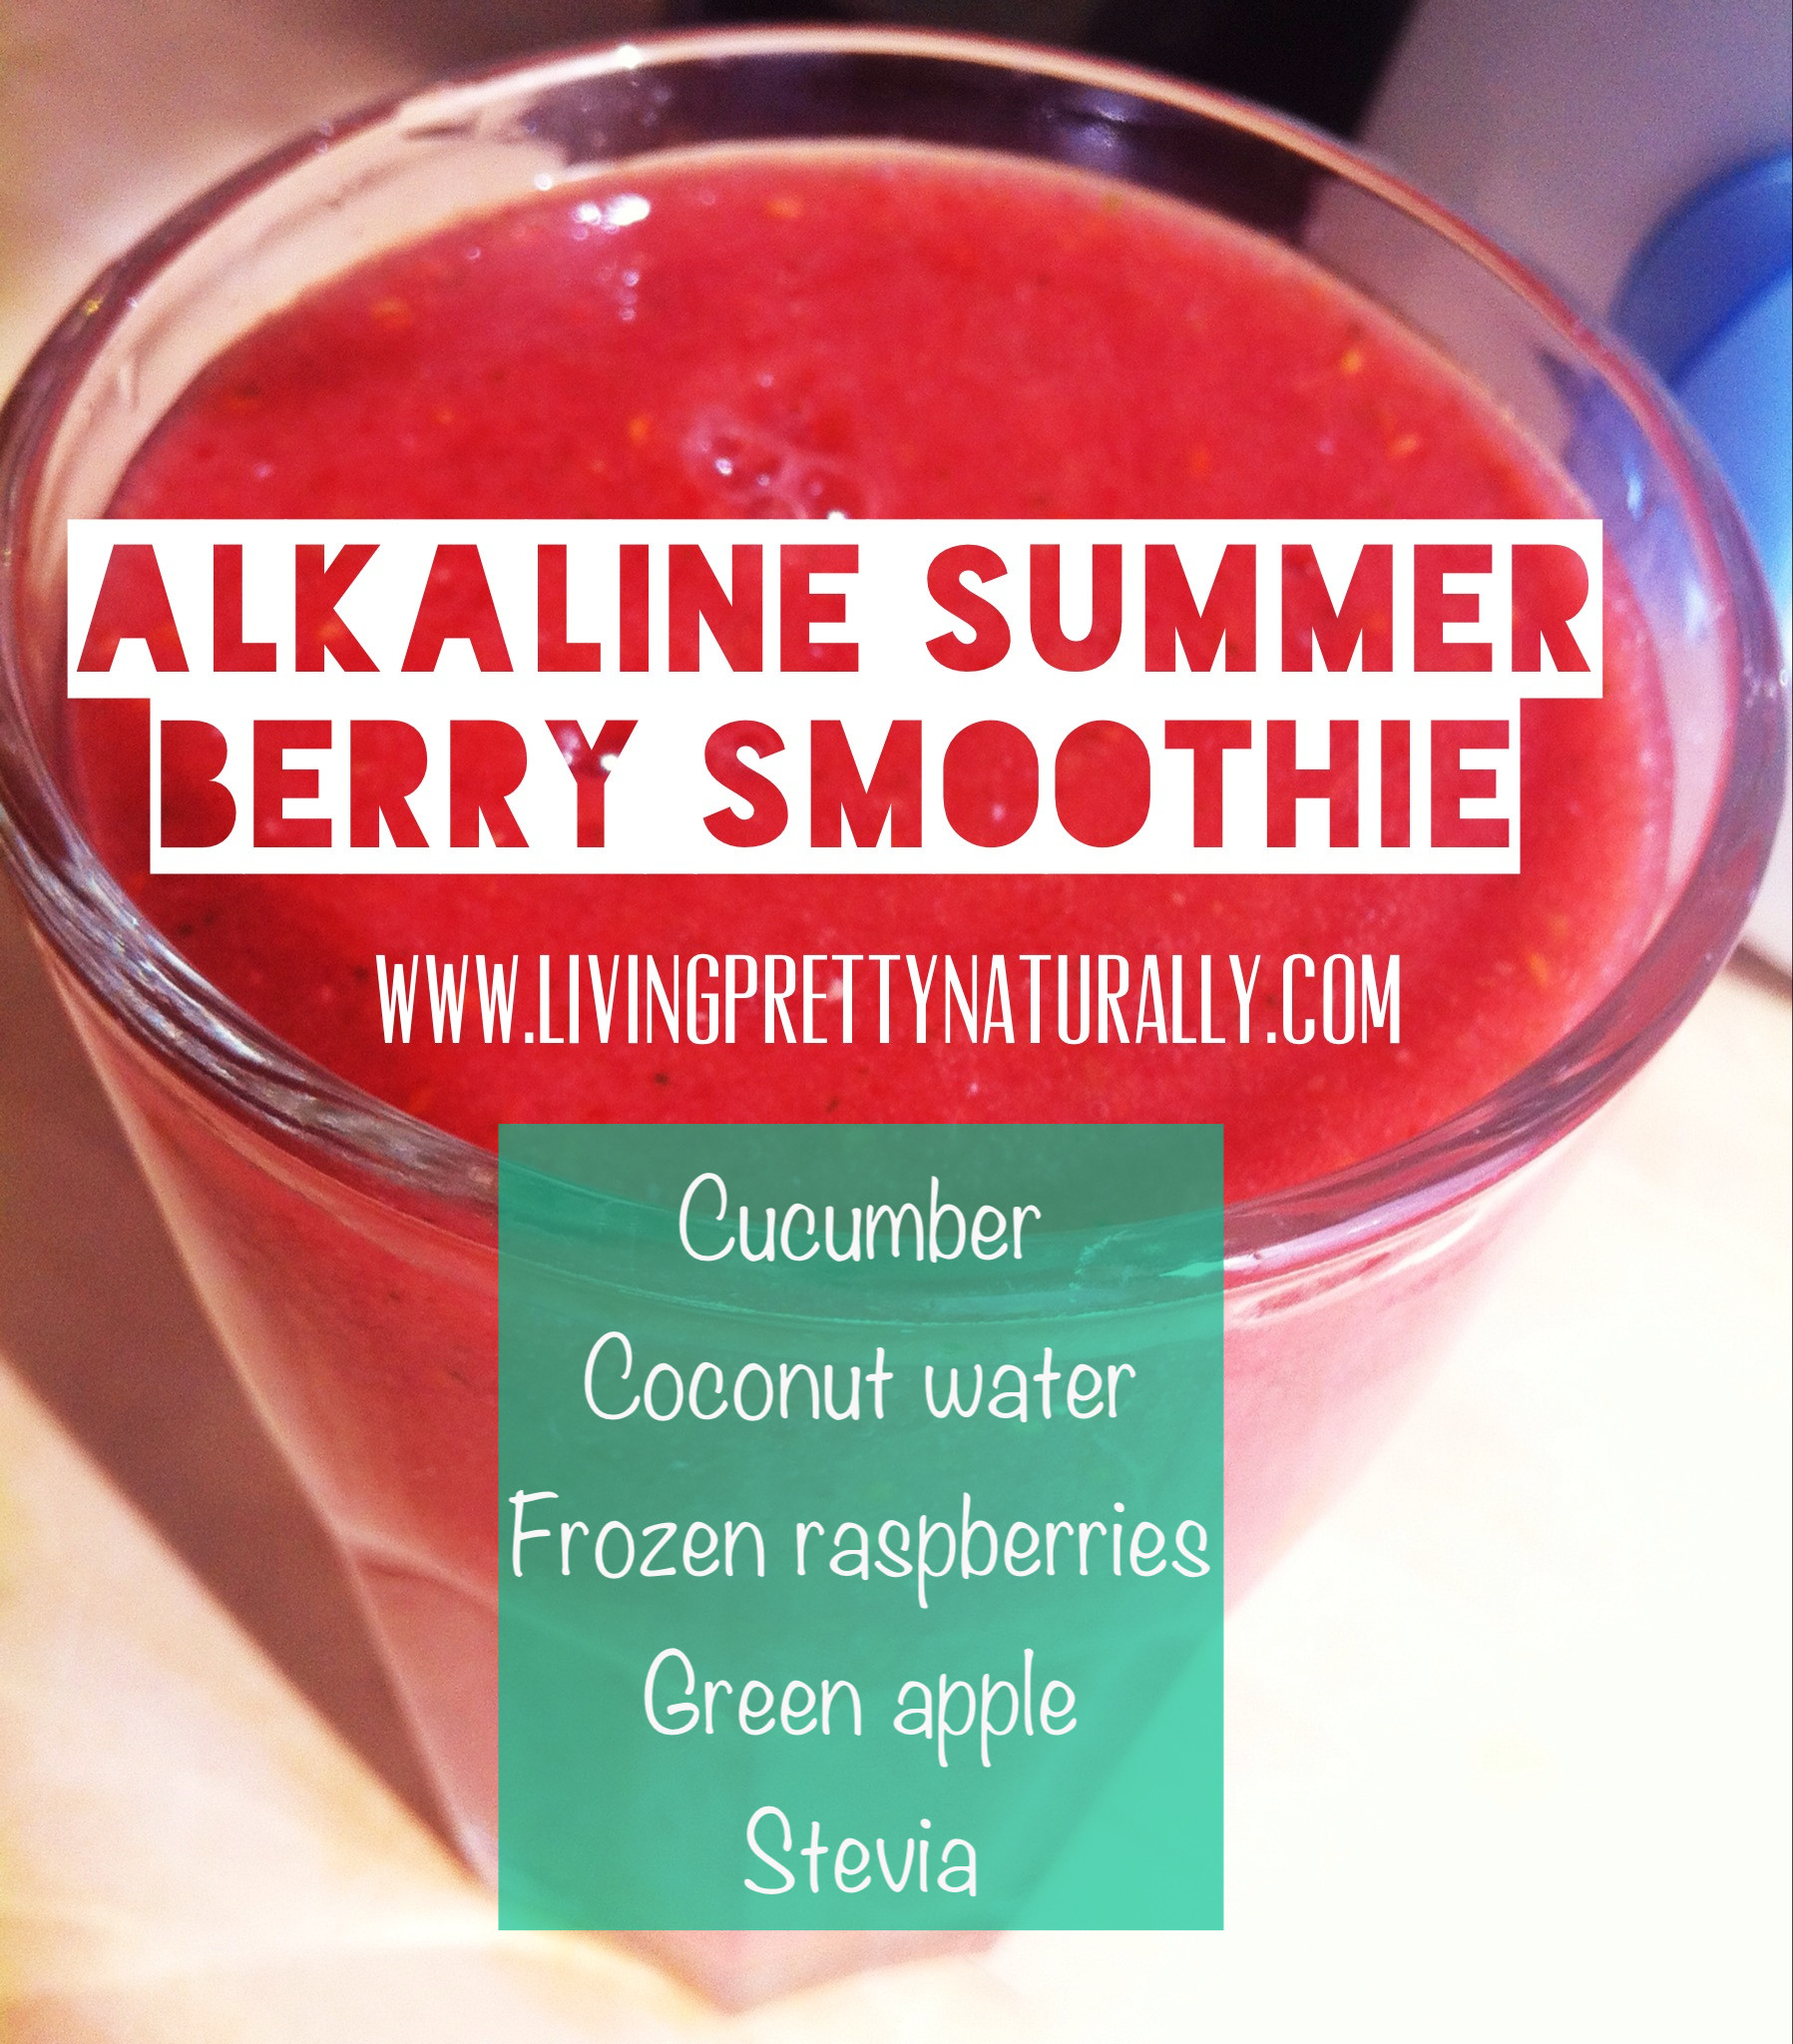 Summer Smoothie Recipes  LPN Smoothie Recipes Super Alkaline Summer Berry Smoothie